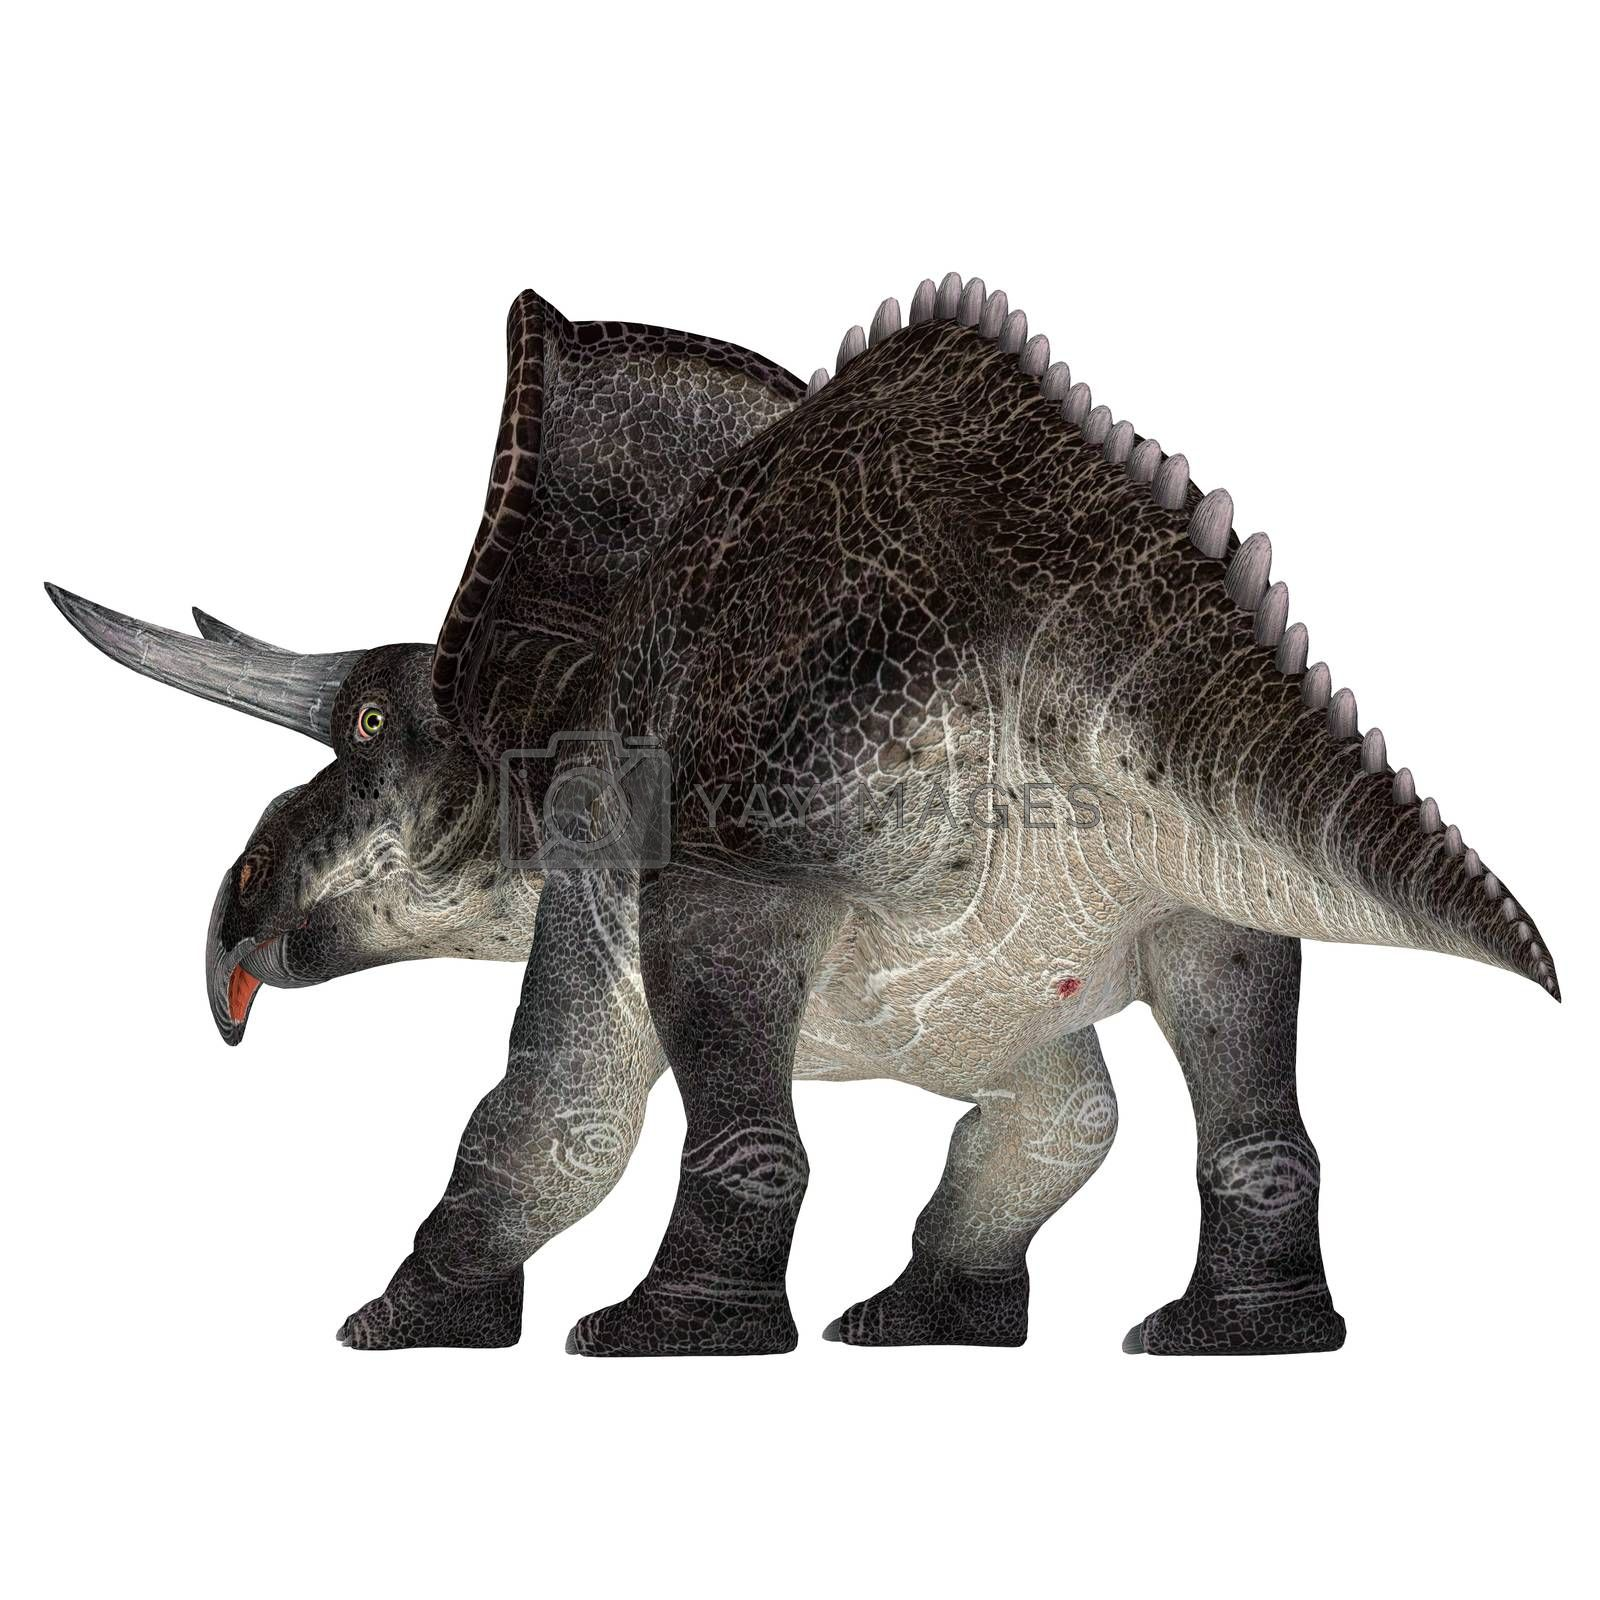 Zuniceratops was a herbivorous Ceratopsian dinosaur that lived in New Mexico, United States during the Cretaceous Period.